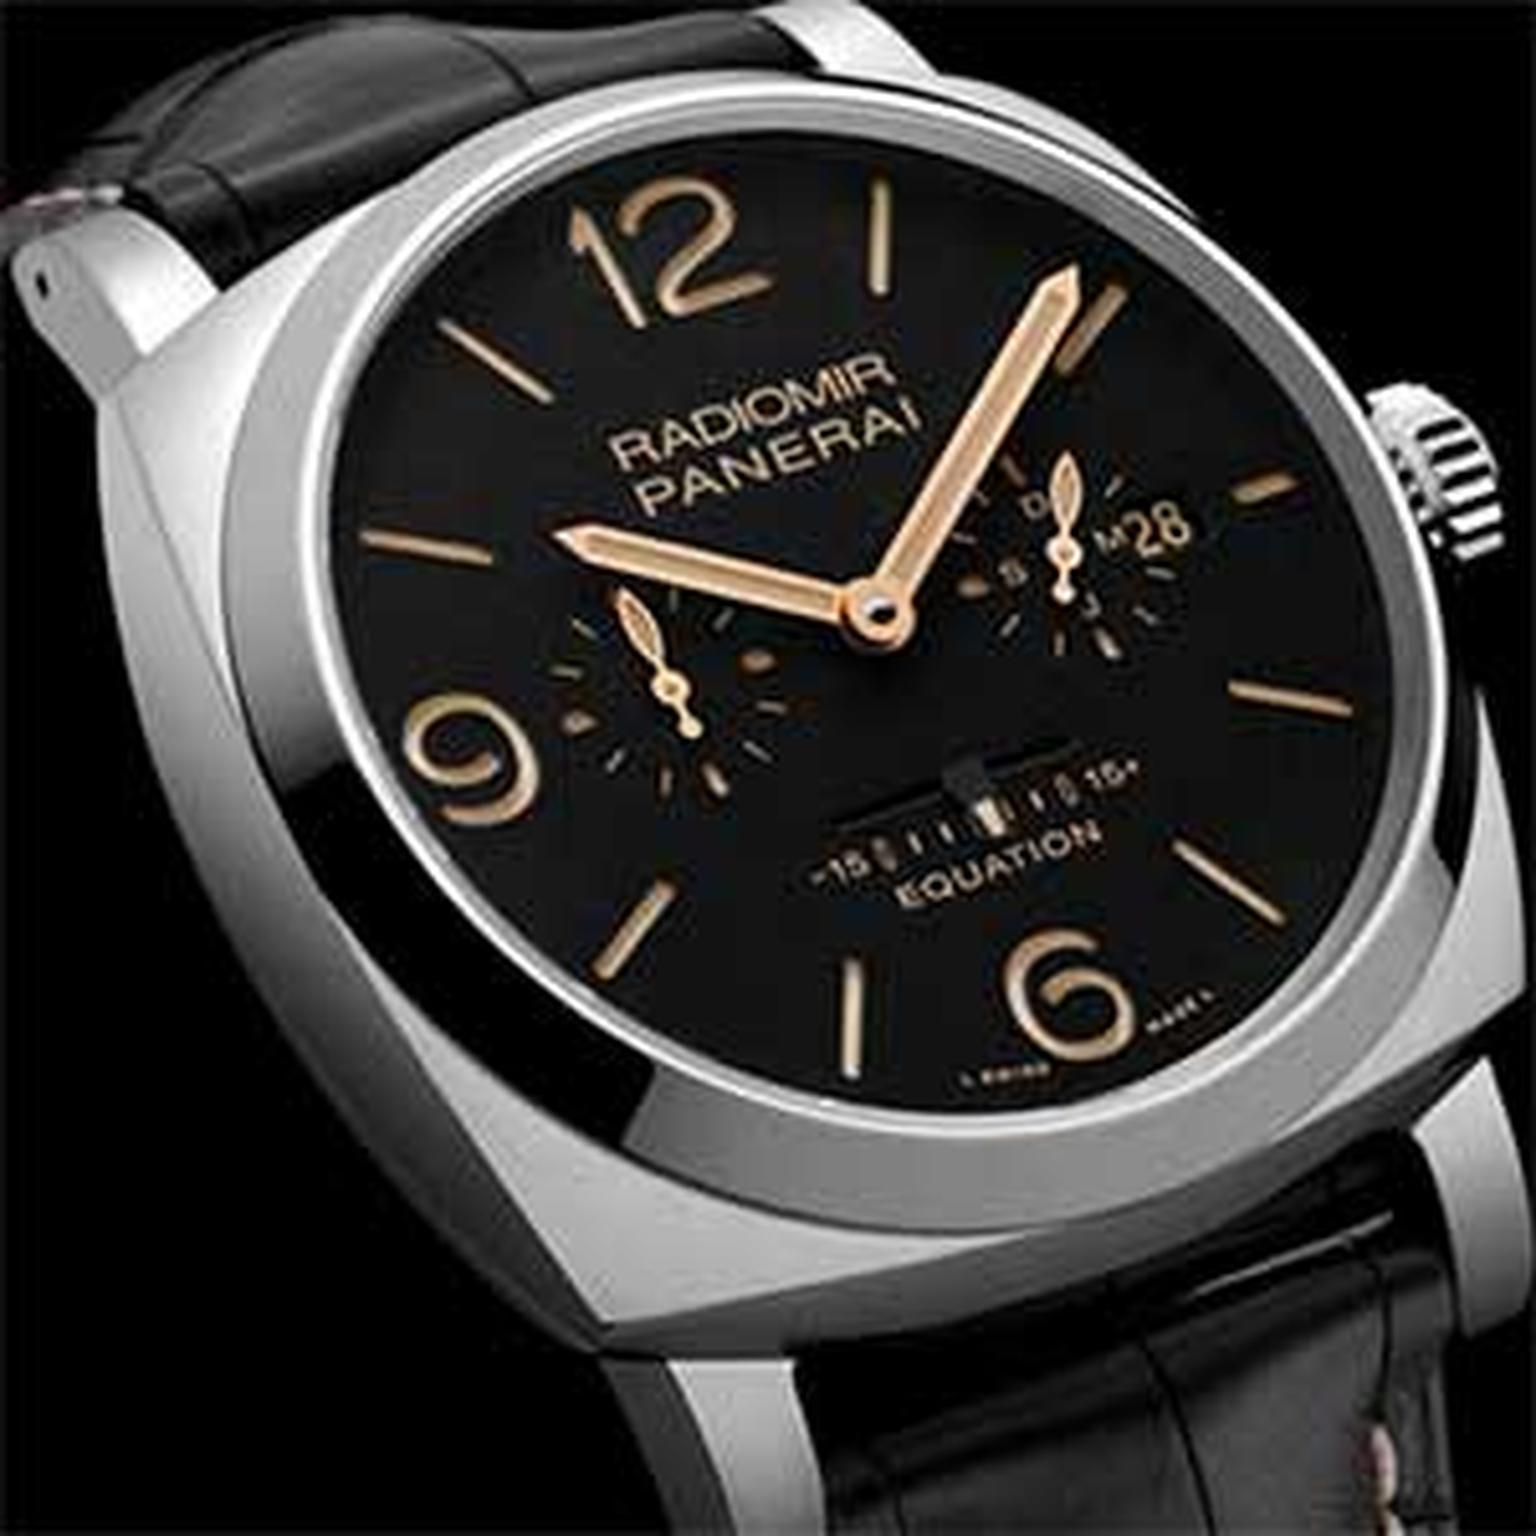 Panerai watches HP